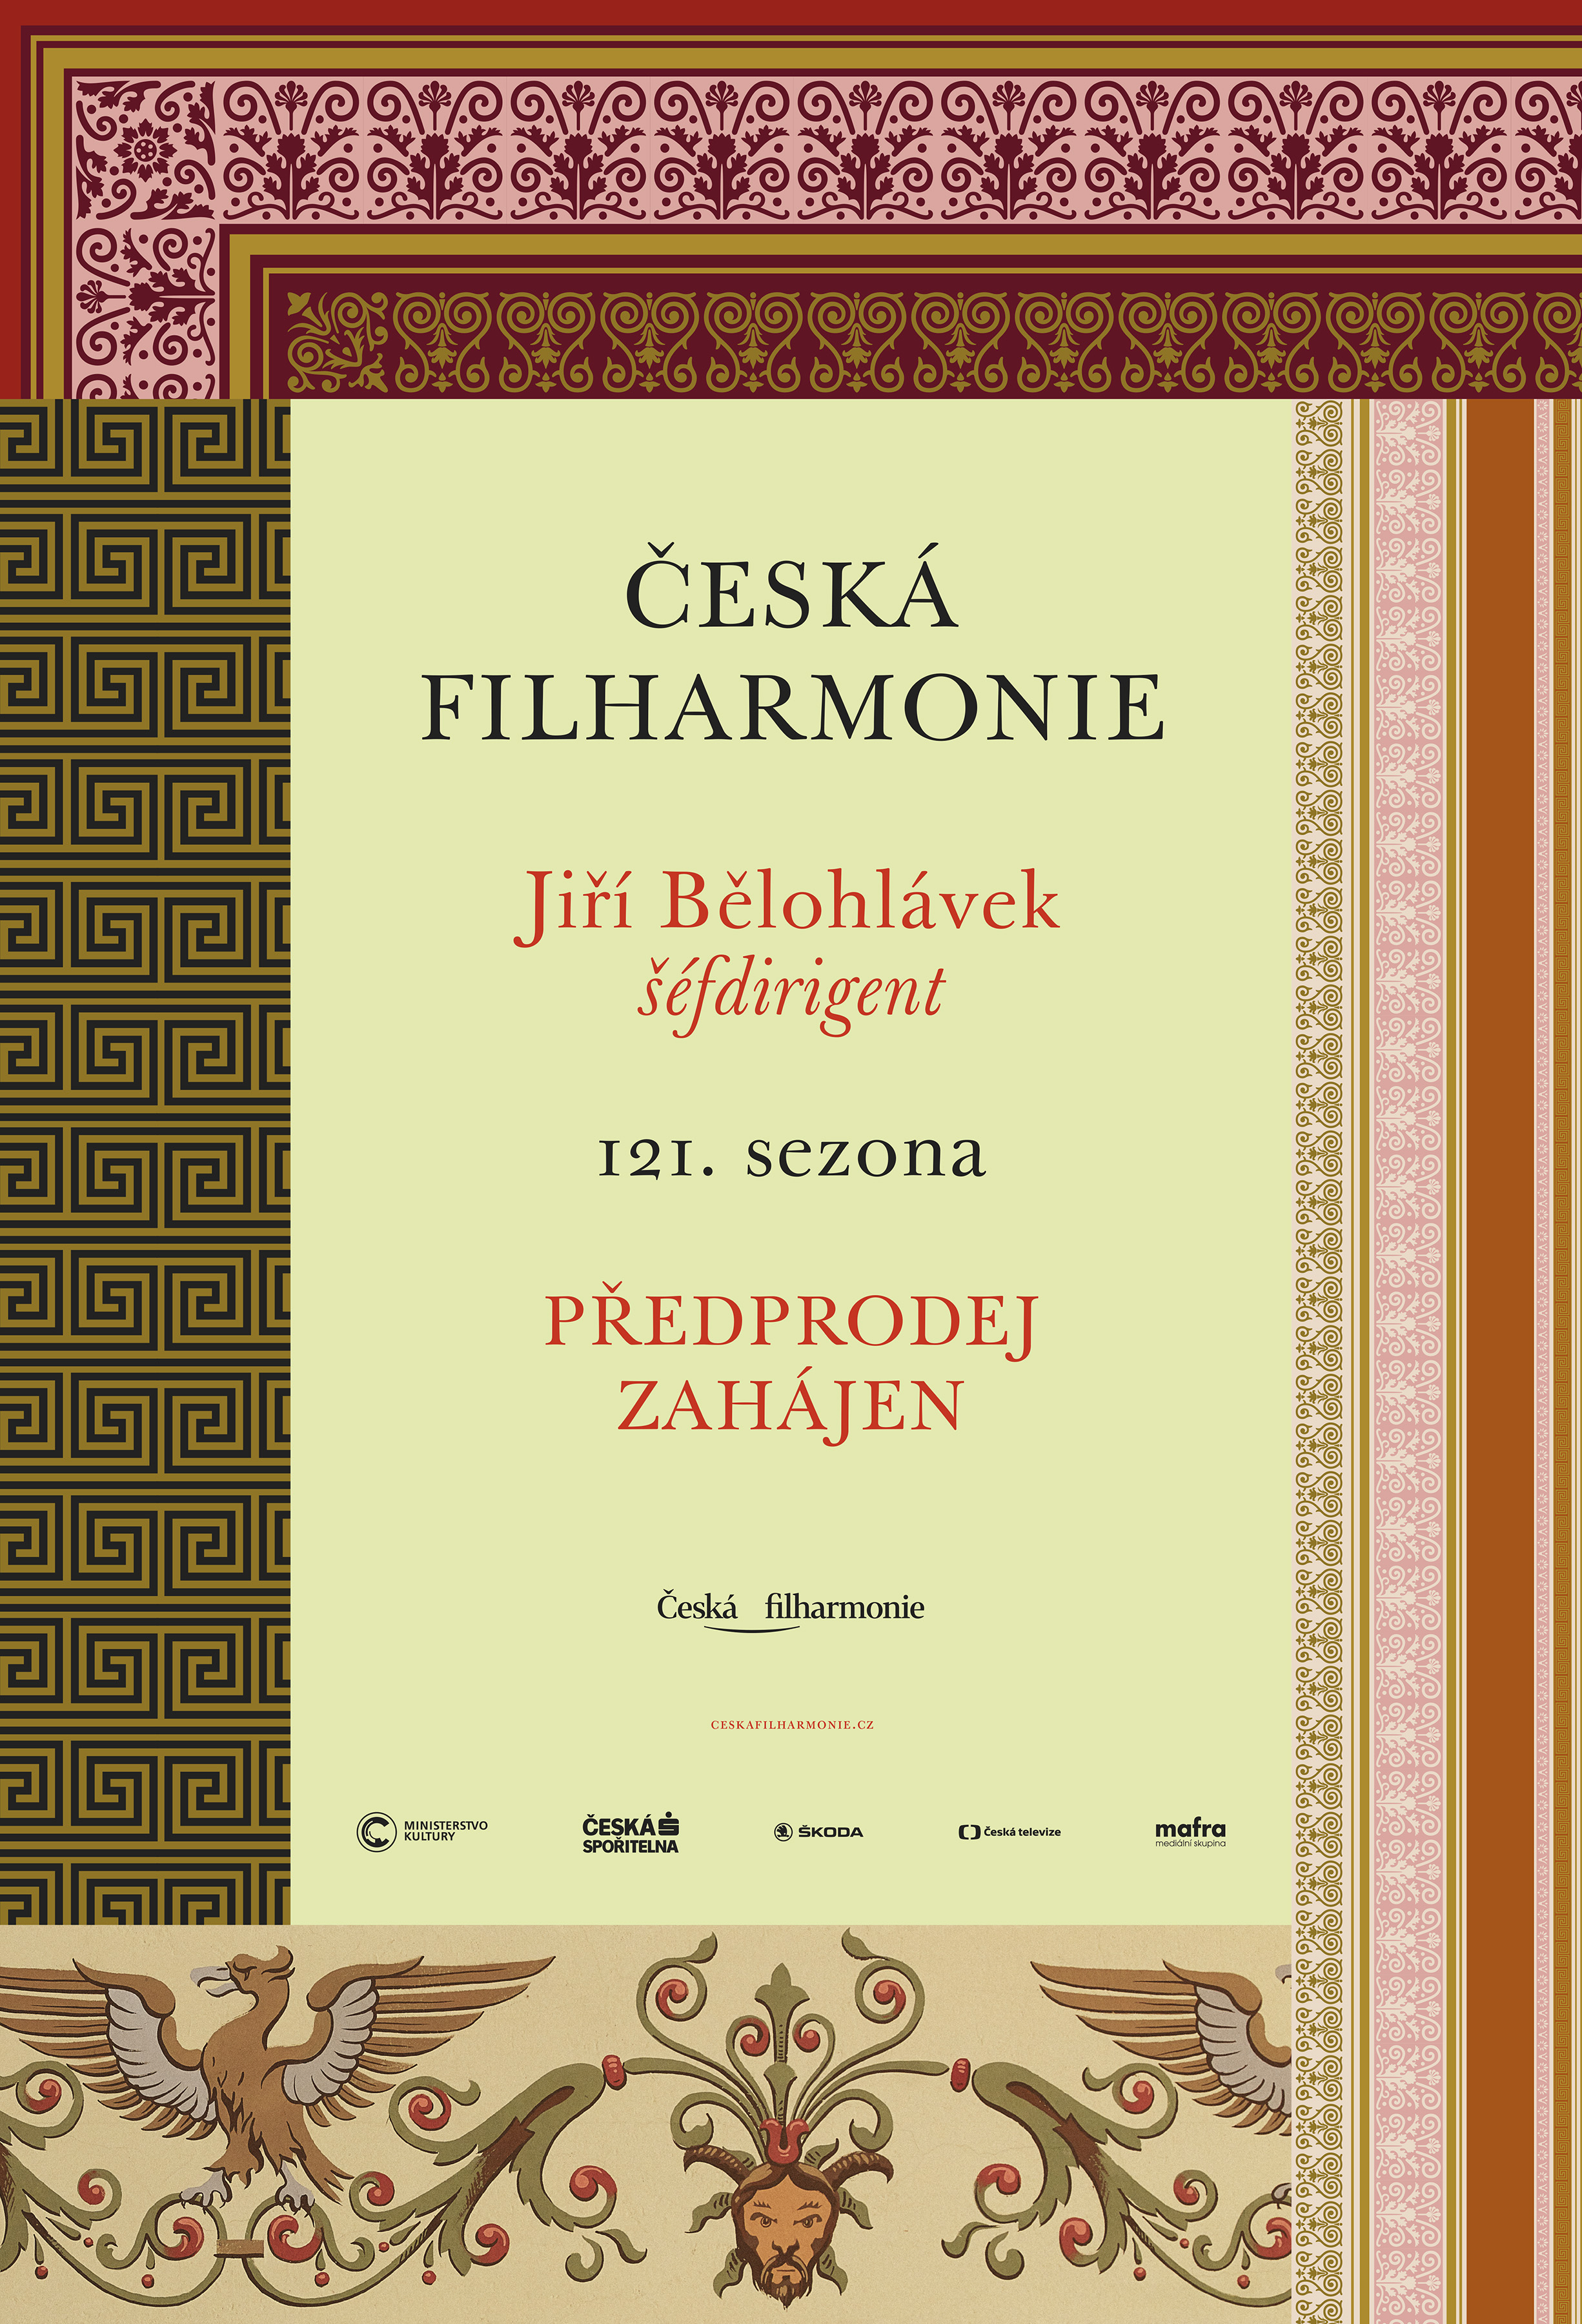 The Czech Philharmonic 2016/2017